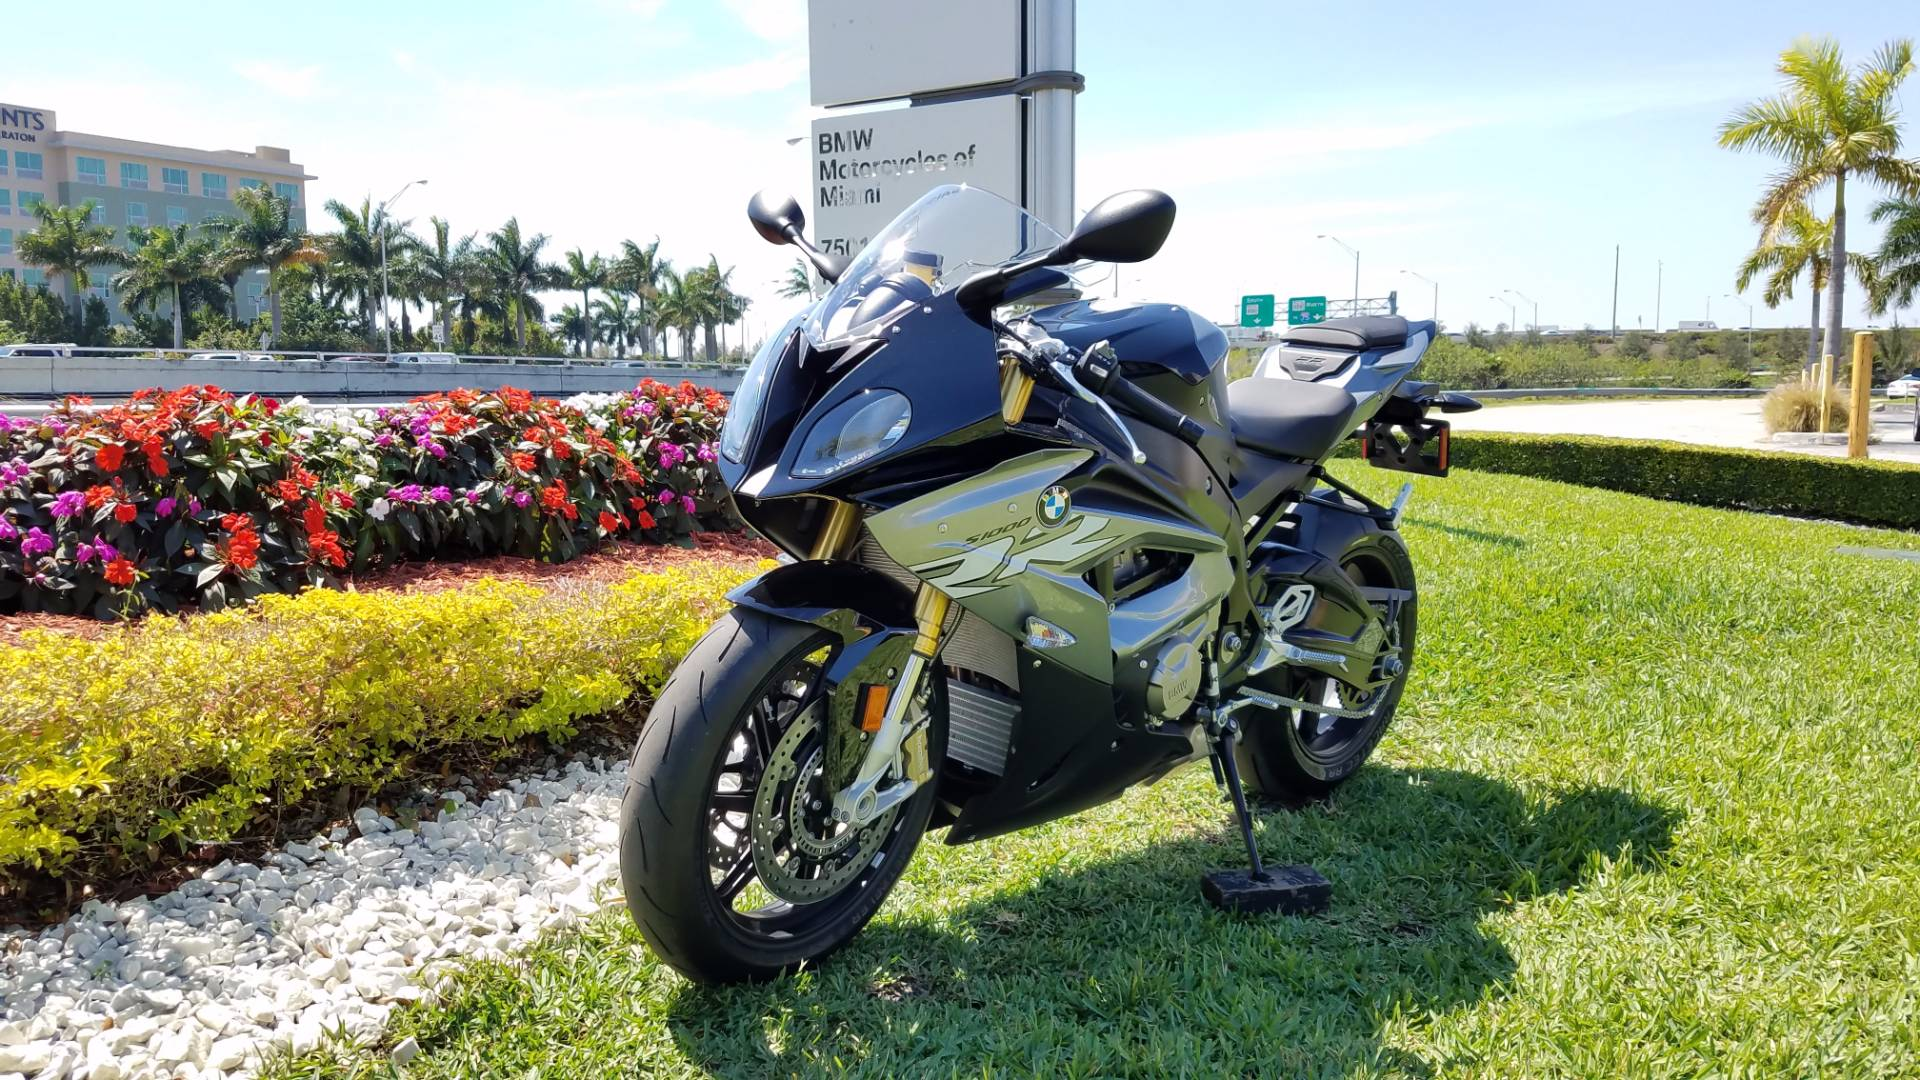 New 2017 BMW S 1000 RR For Sale, BMW S 1000 RR For Sale, BMW Motorcycle RR, new BMW Motorcycle RR